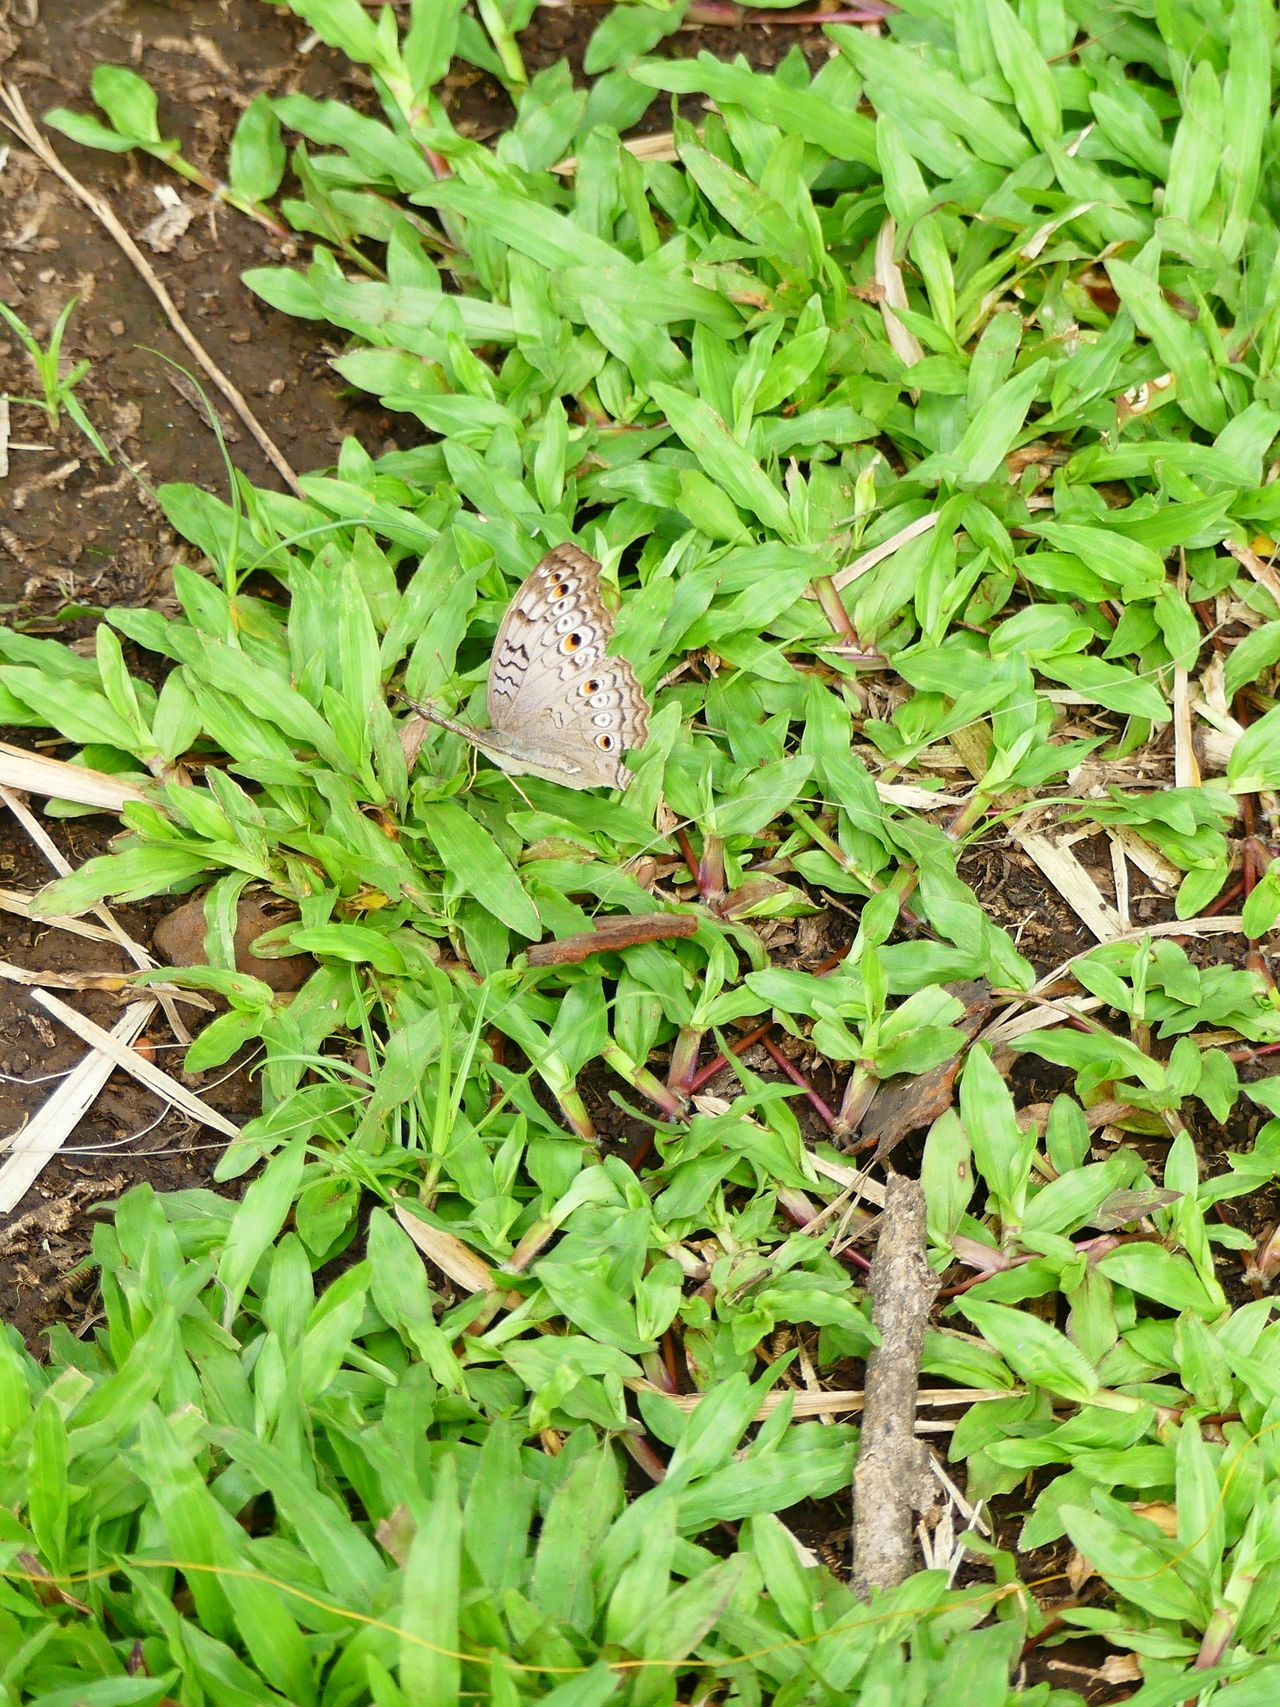 My Daughter's Capture Lone Butterfly Animals In The Wild Nature Green Color Insect High Angle View Outdoors Leaf No People Growth Animal Themes Butterfly - Insect Beauty In Nature Grass Day Capture The Light Somewhere I Remember Somewhere In The World Somewhere Over The Rainbow Day Dreaming Beauty In Nature Wildlife Animal Wildlife Nature